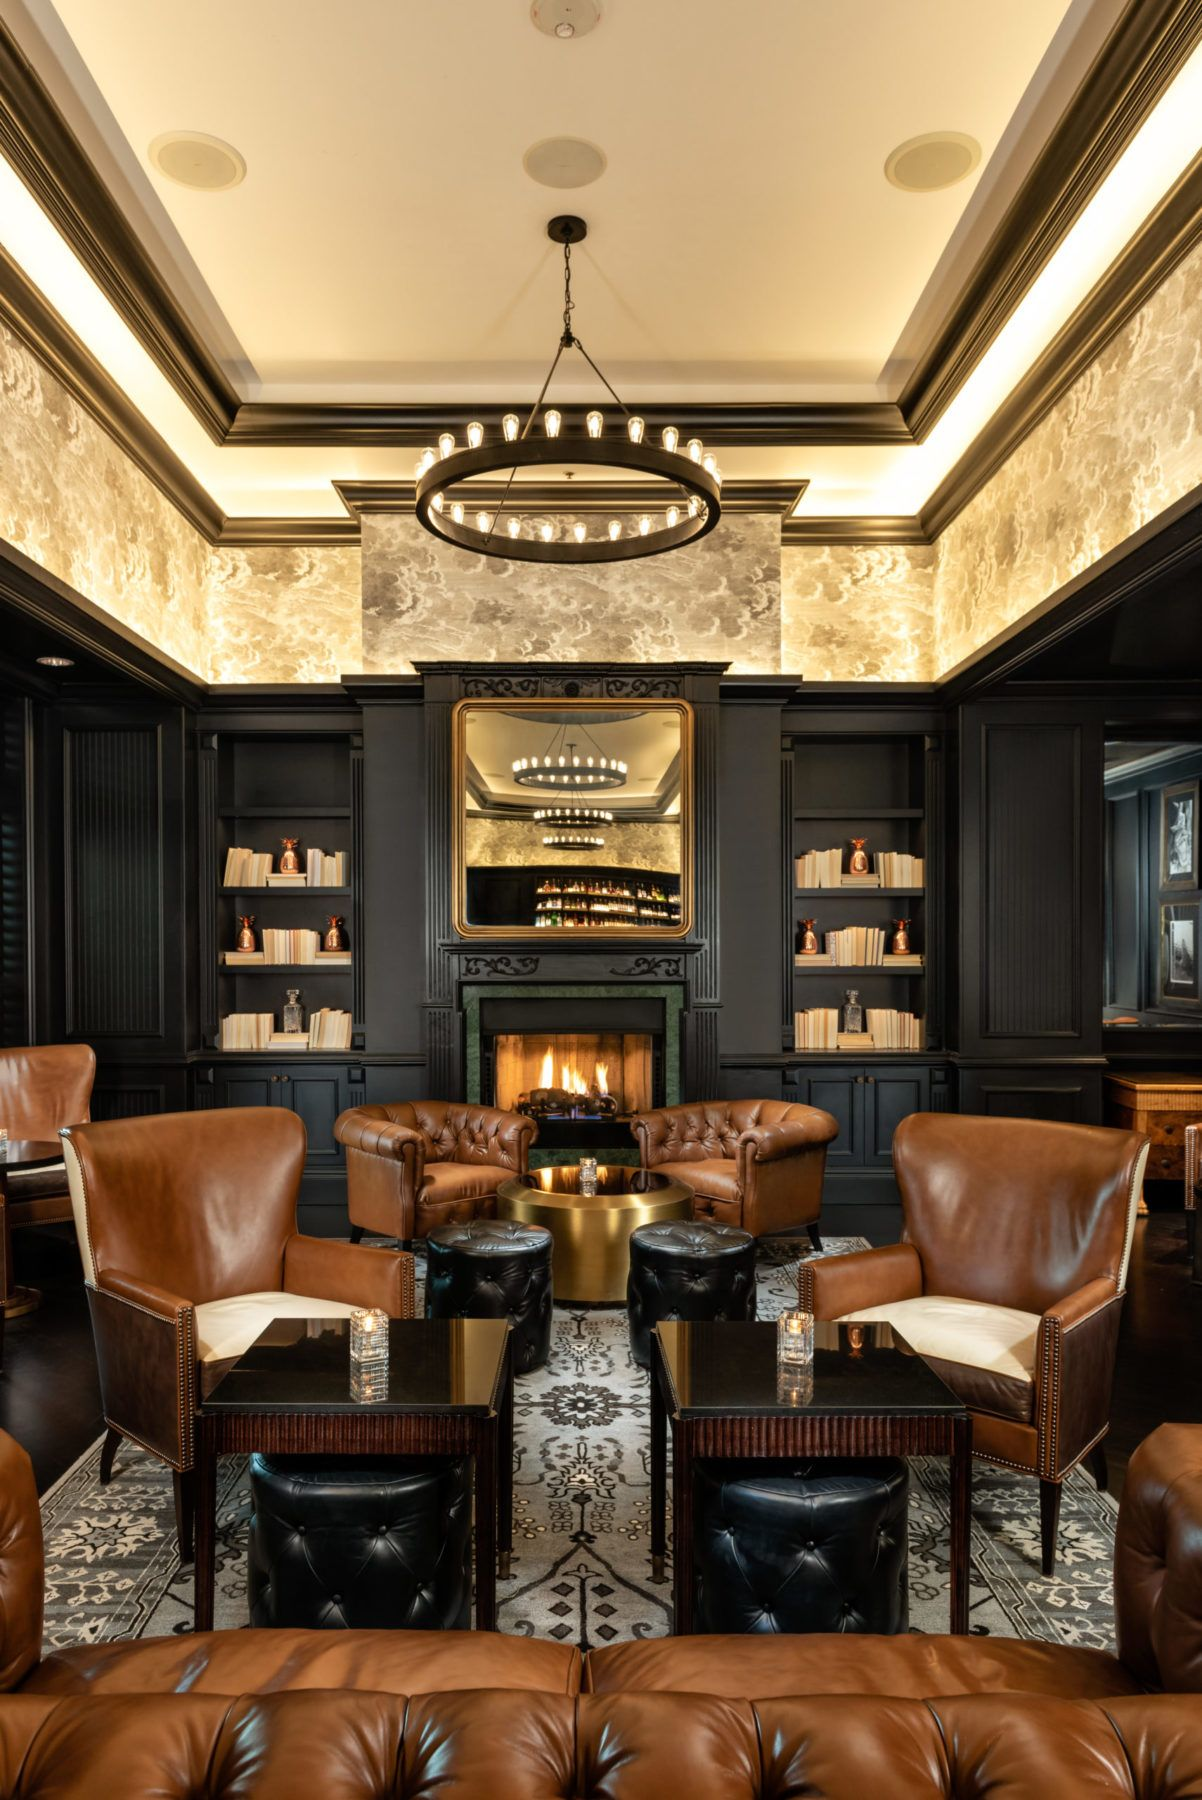 Fireplace view, dark wood and leather couches at The Commodore